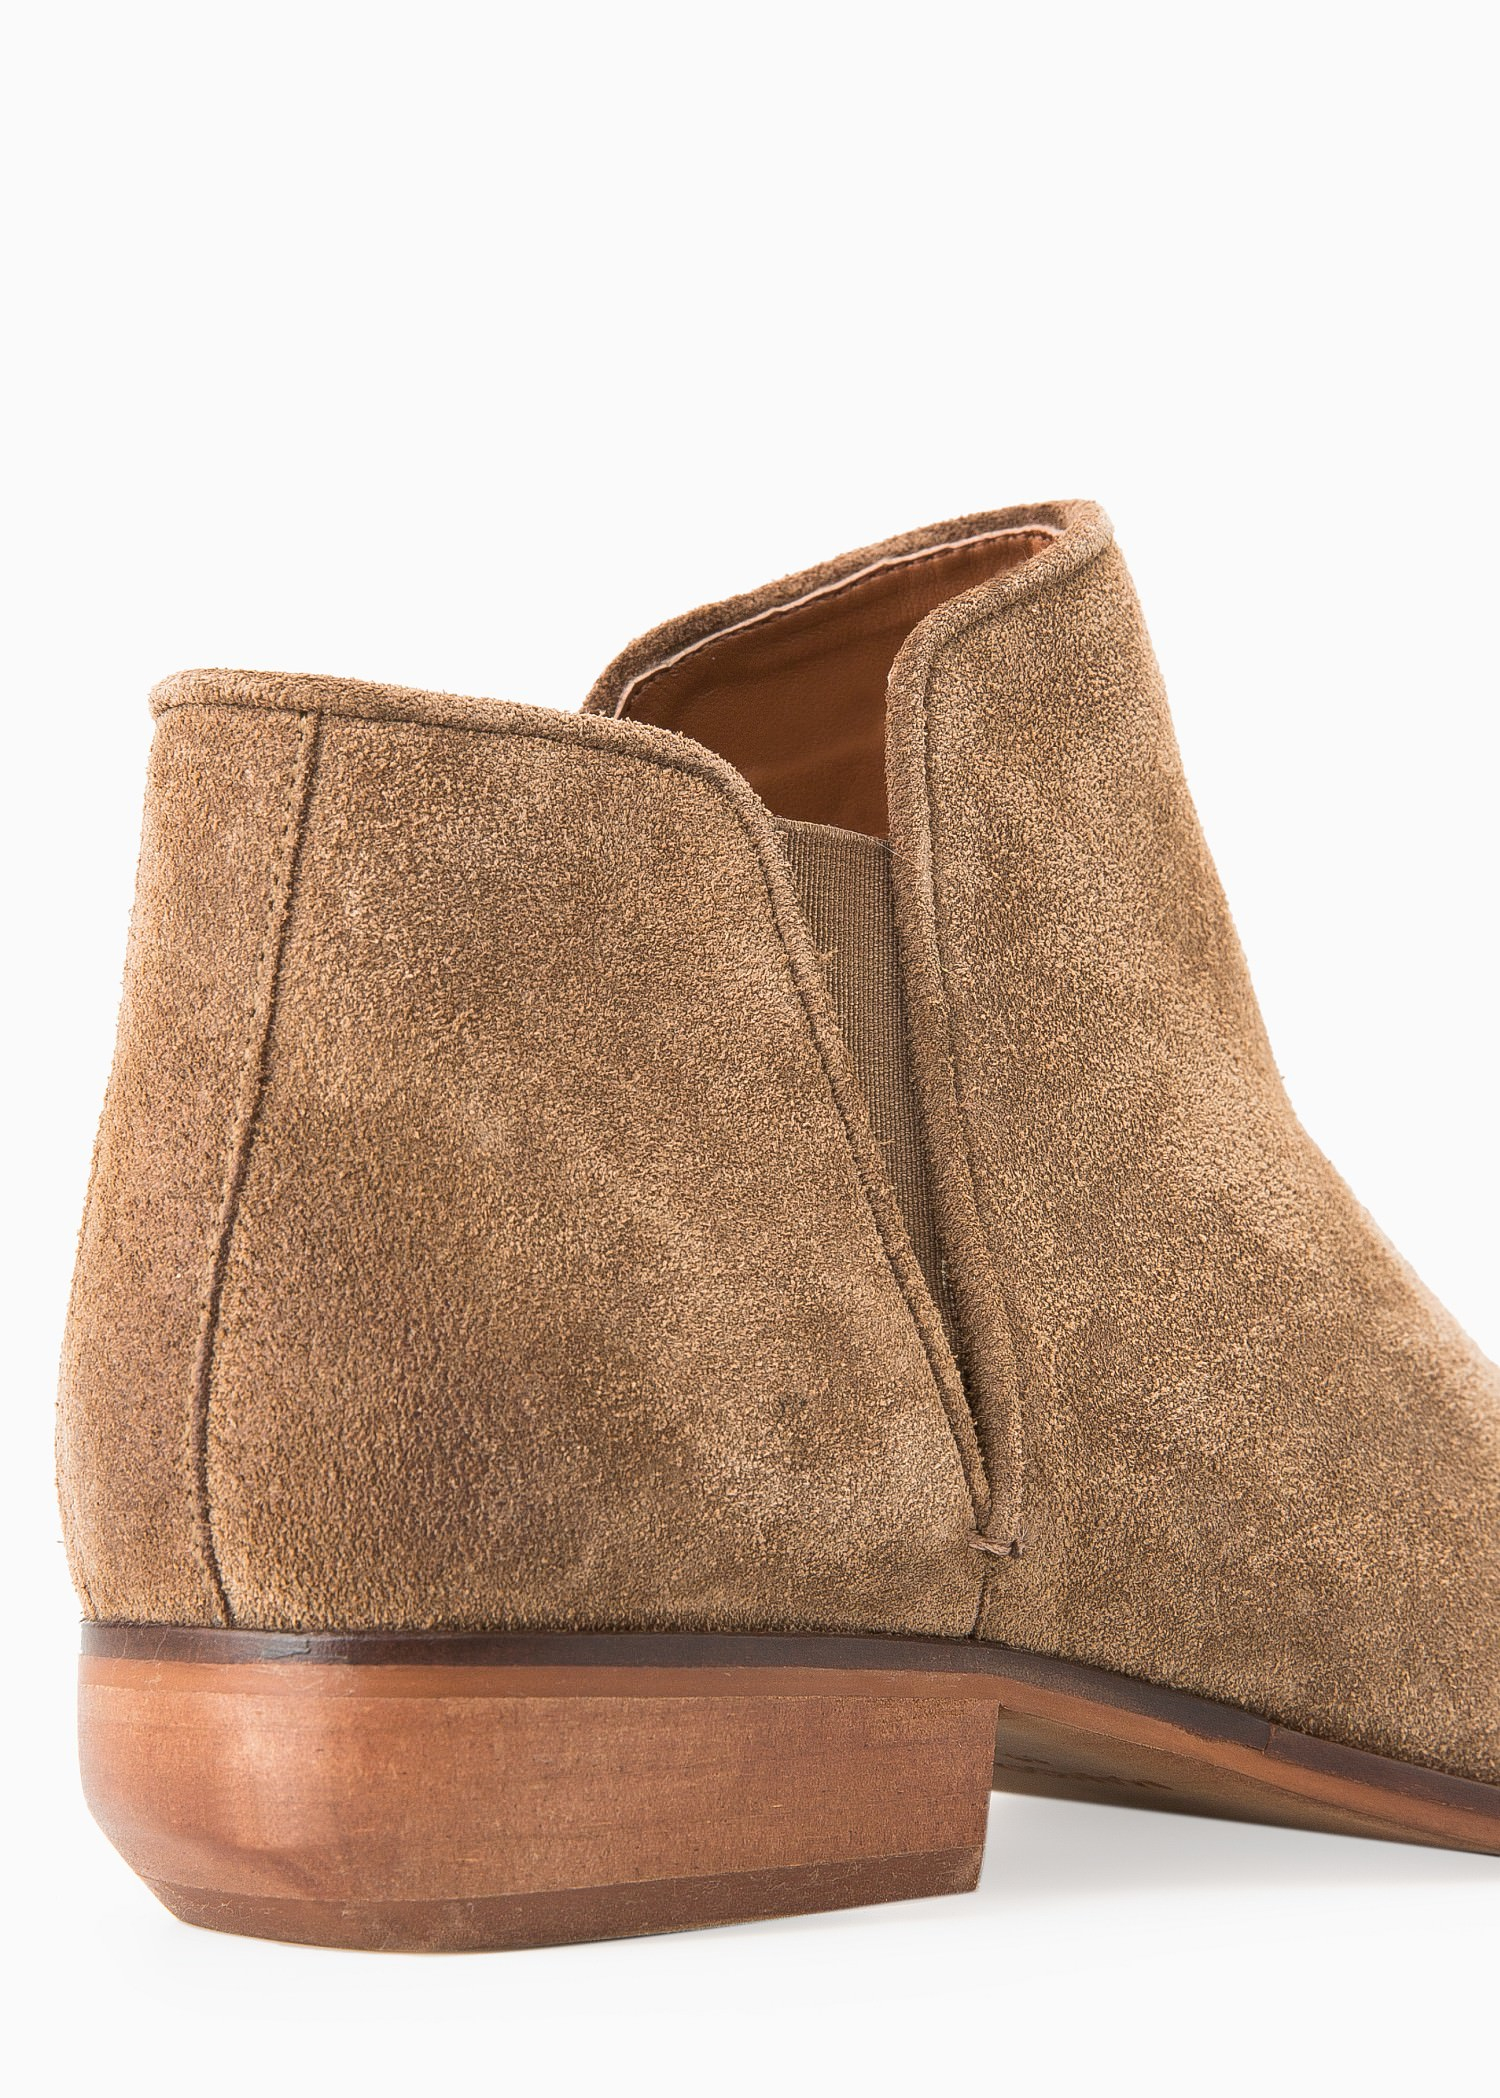 Brown Suede Flat Ankle Boots Tsaa Heel